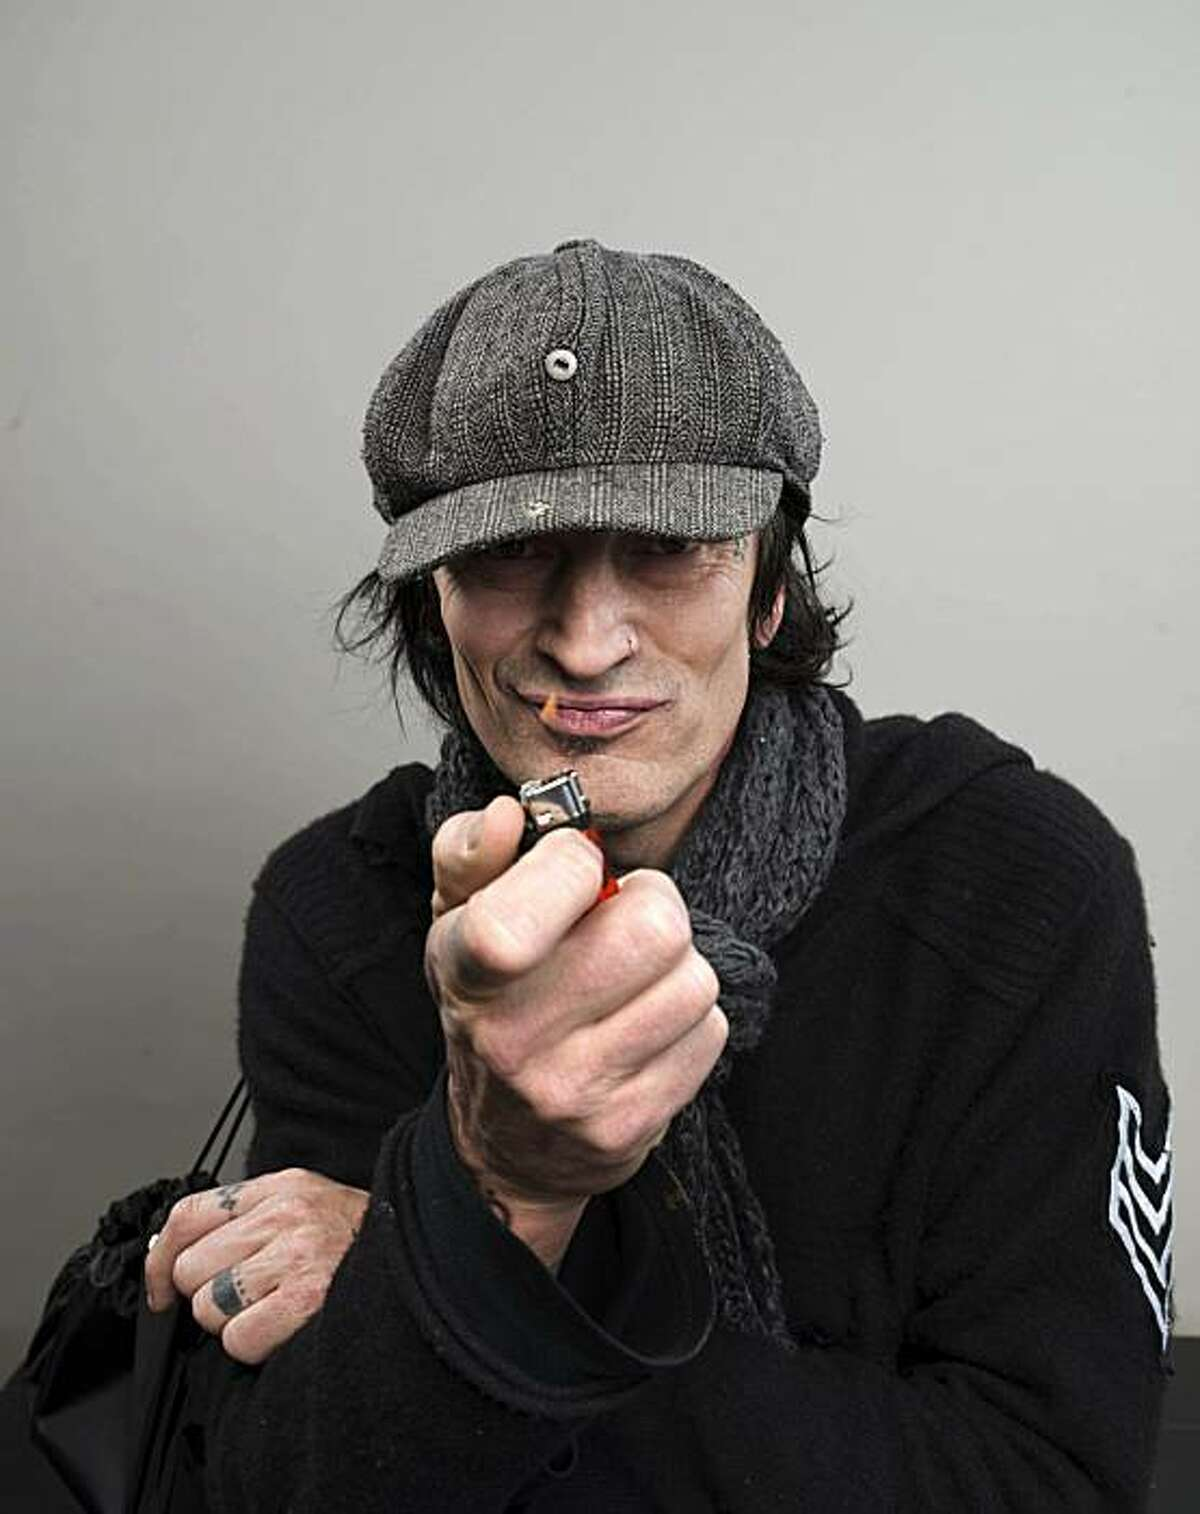 Motley Crue rocker Tommy Lee turns 50 today, Wednesday, October 3, 2012. Here he poses for a portrait last year.